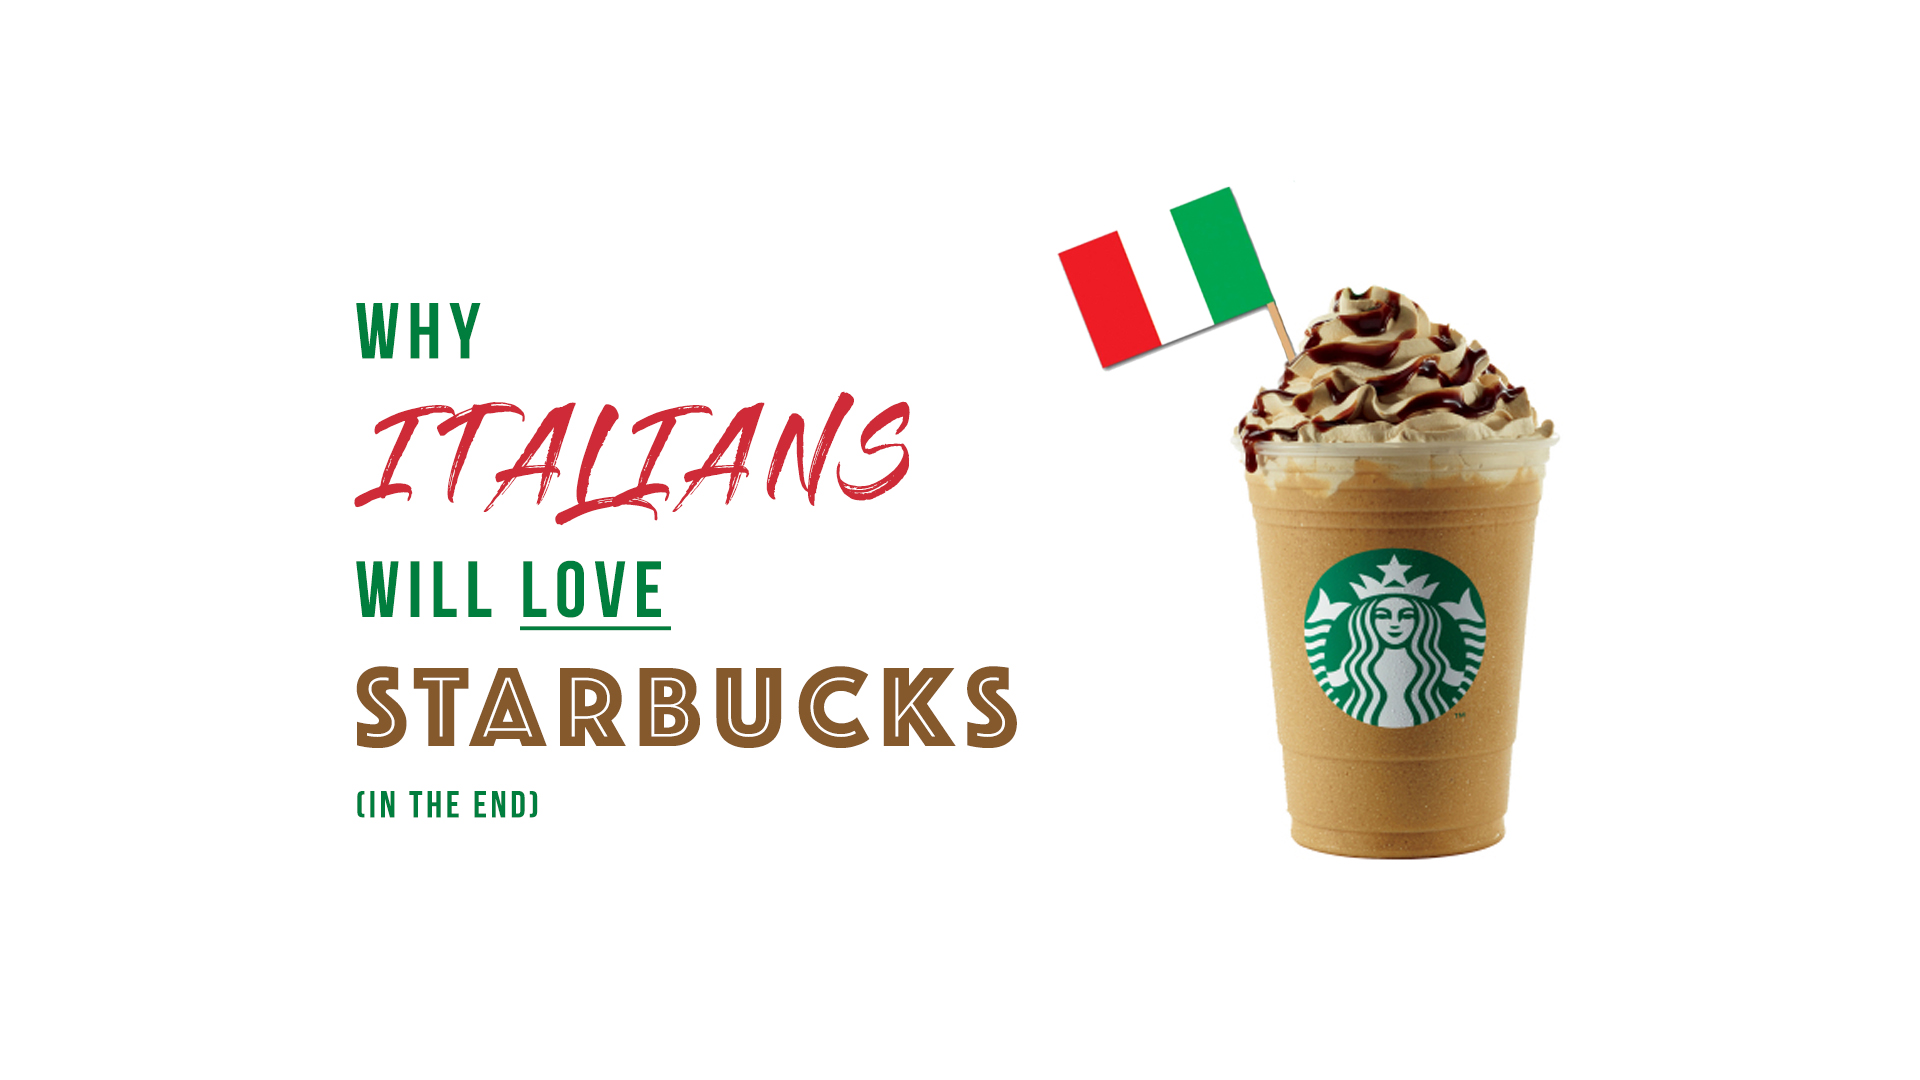 Why Italians will love Starbucks (in the end) – Dom Cutrupi Page